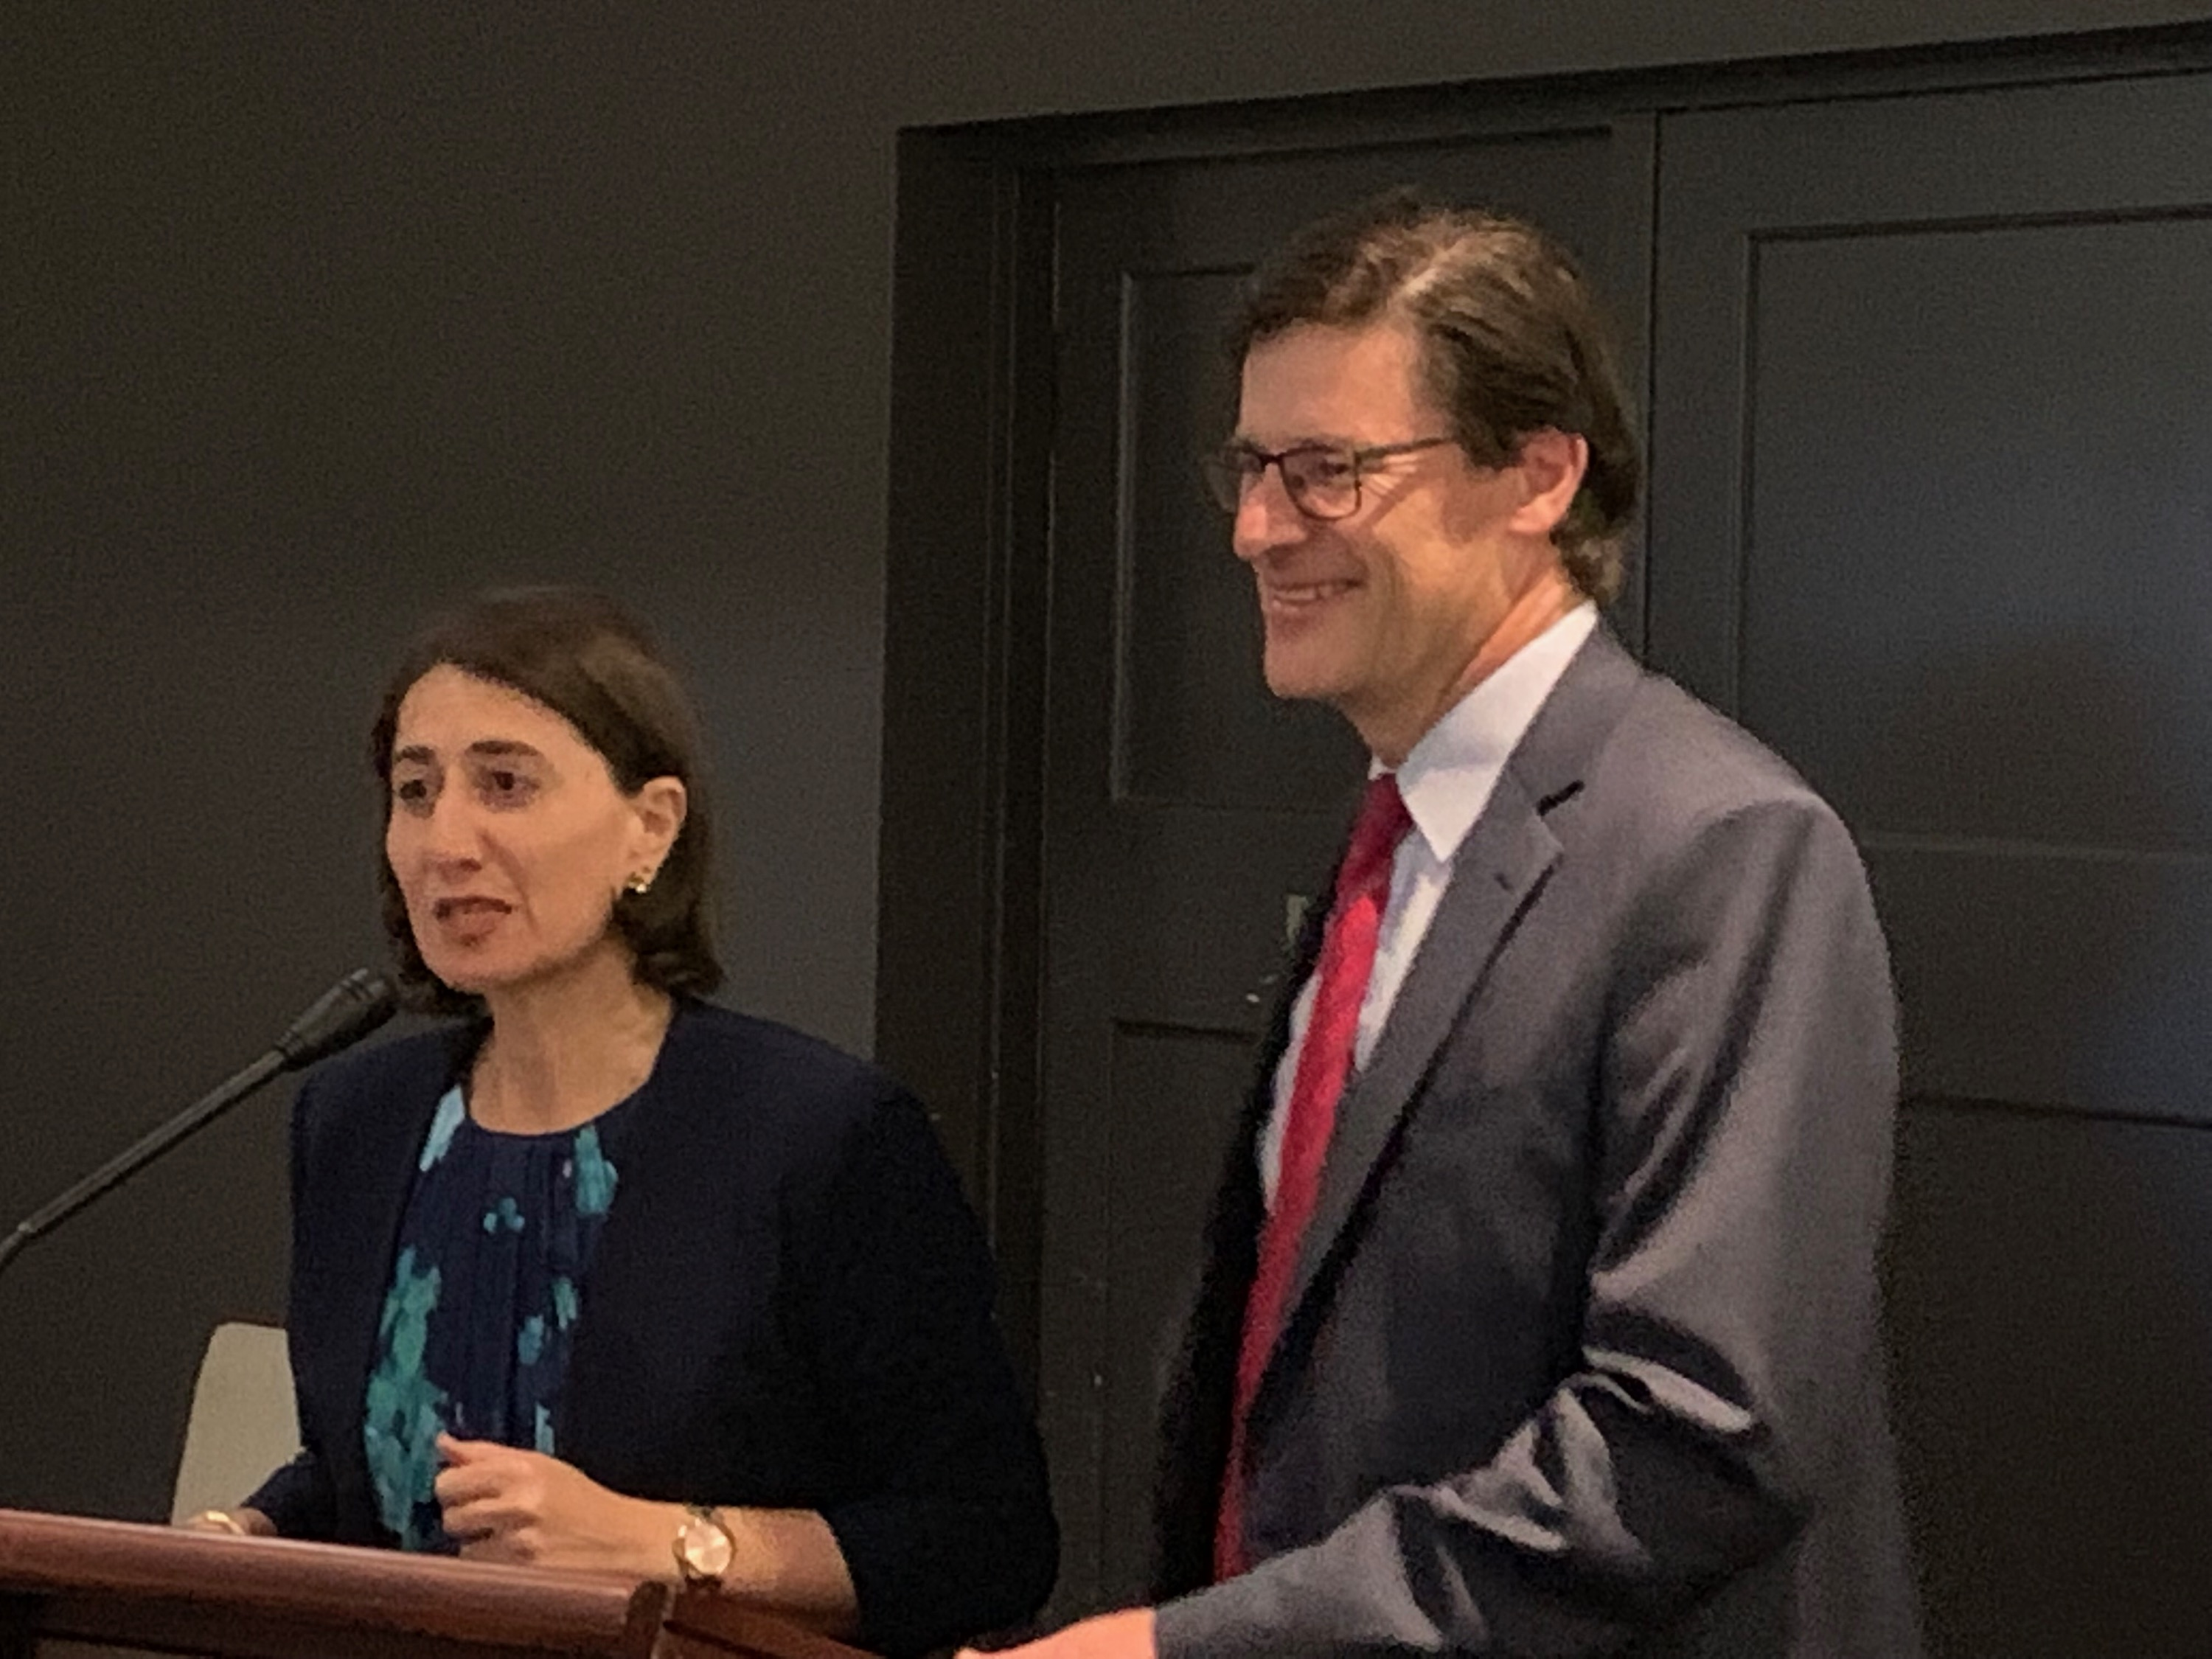 Premier Gladys Berejiklian launches Jonathan O'Dea's Campaign at Pymble Golf Club on Tuesday 5 February 2019